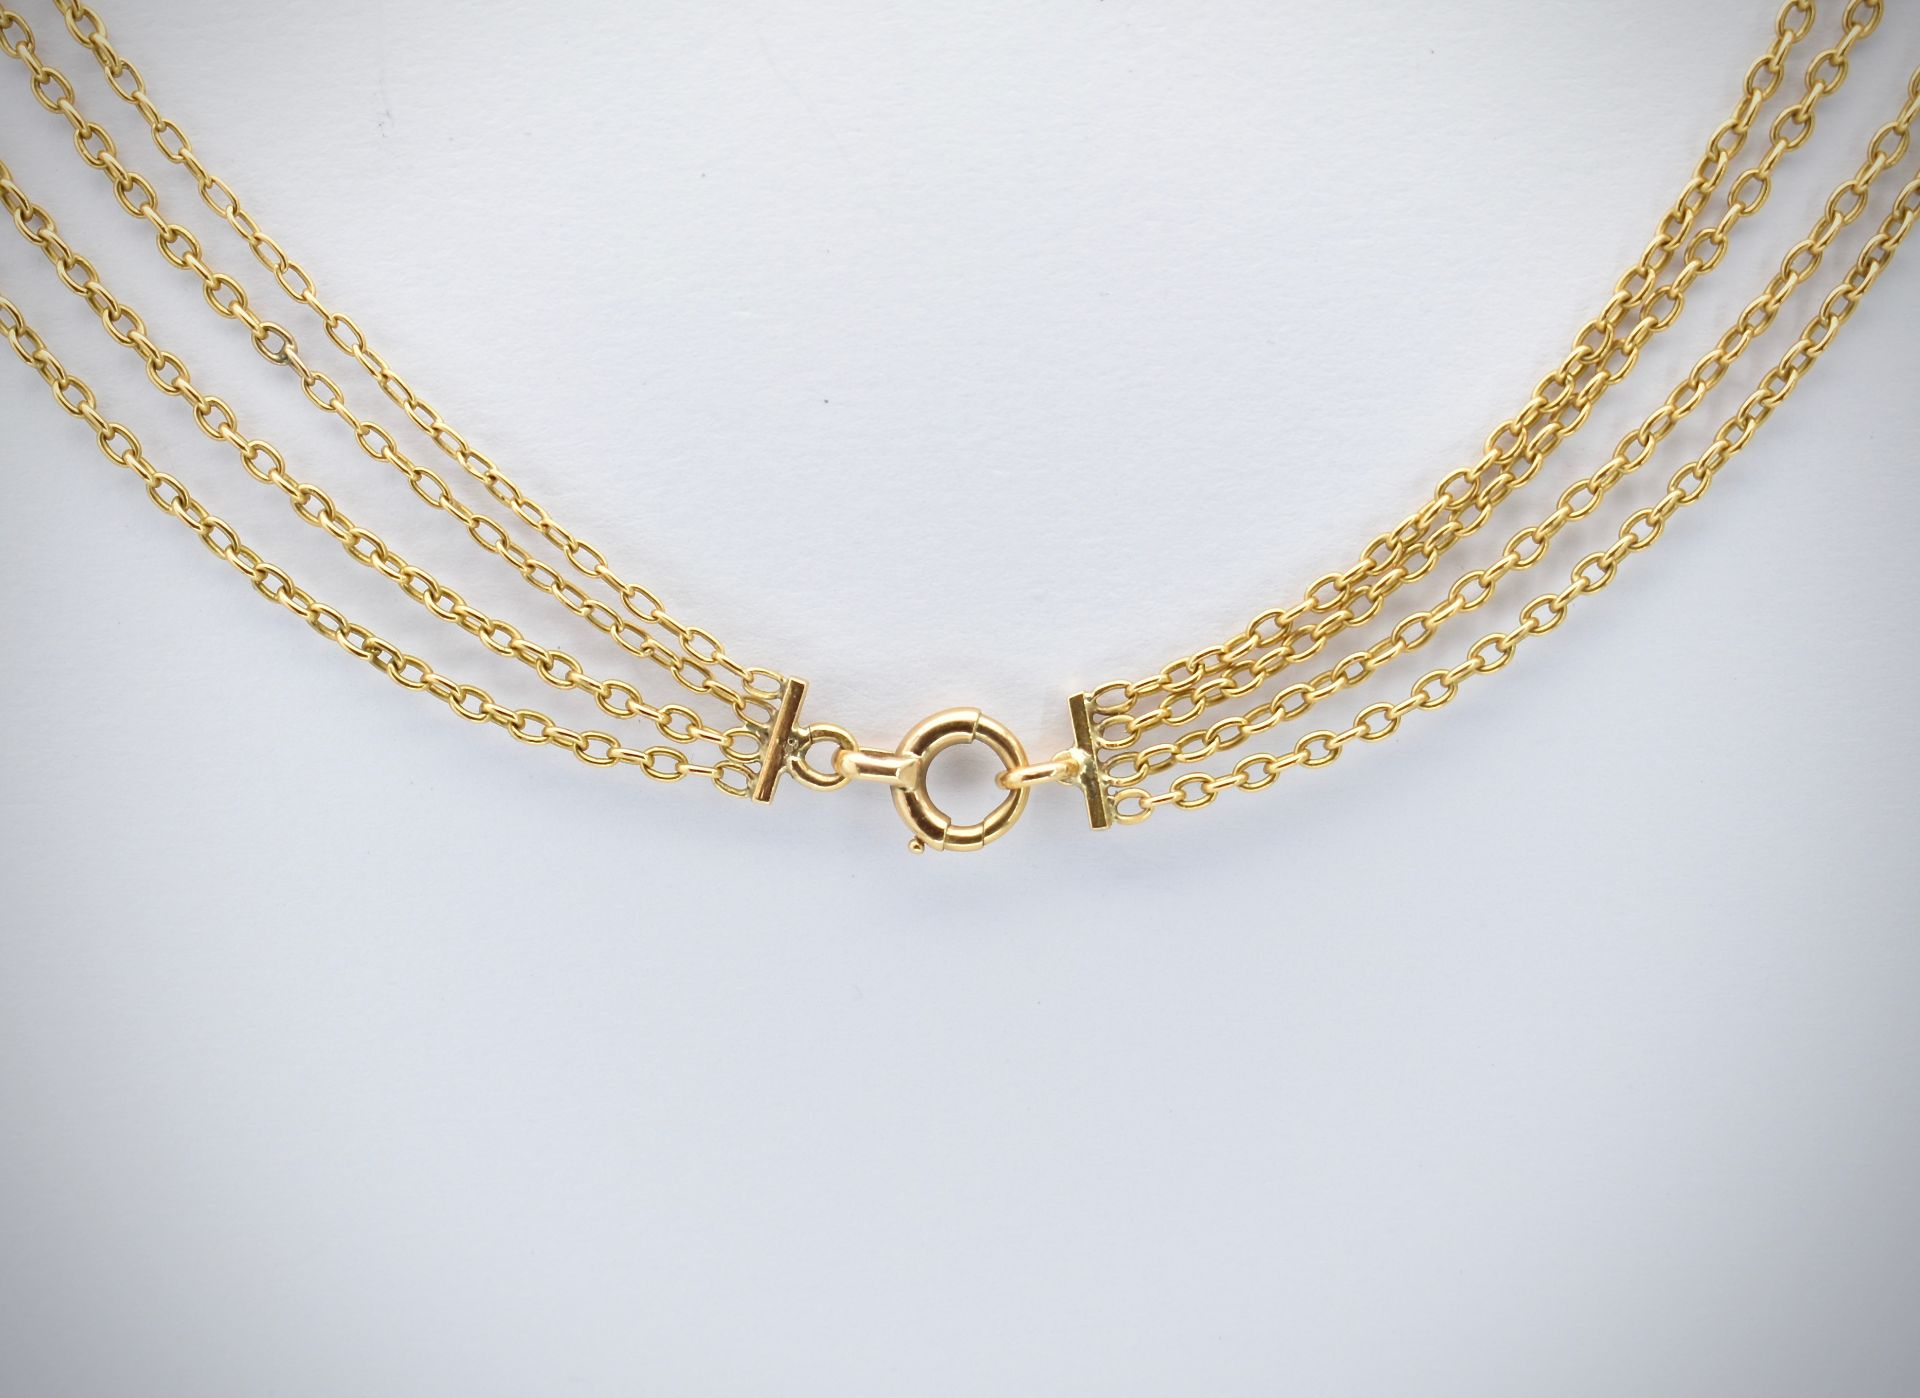 French 18ct Gold & Pearl Four Strand Necklace - Image 2 of 4